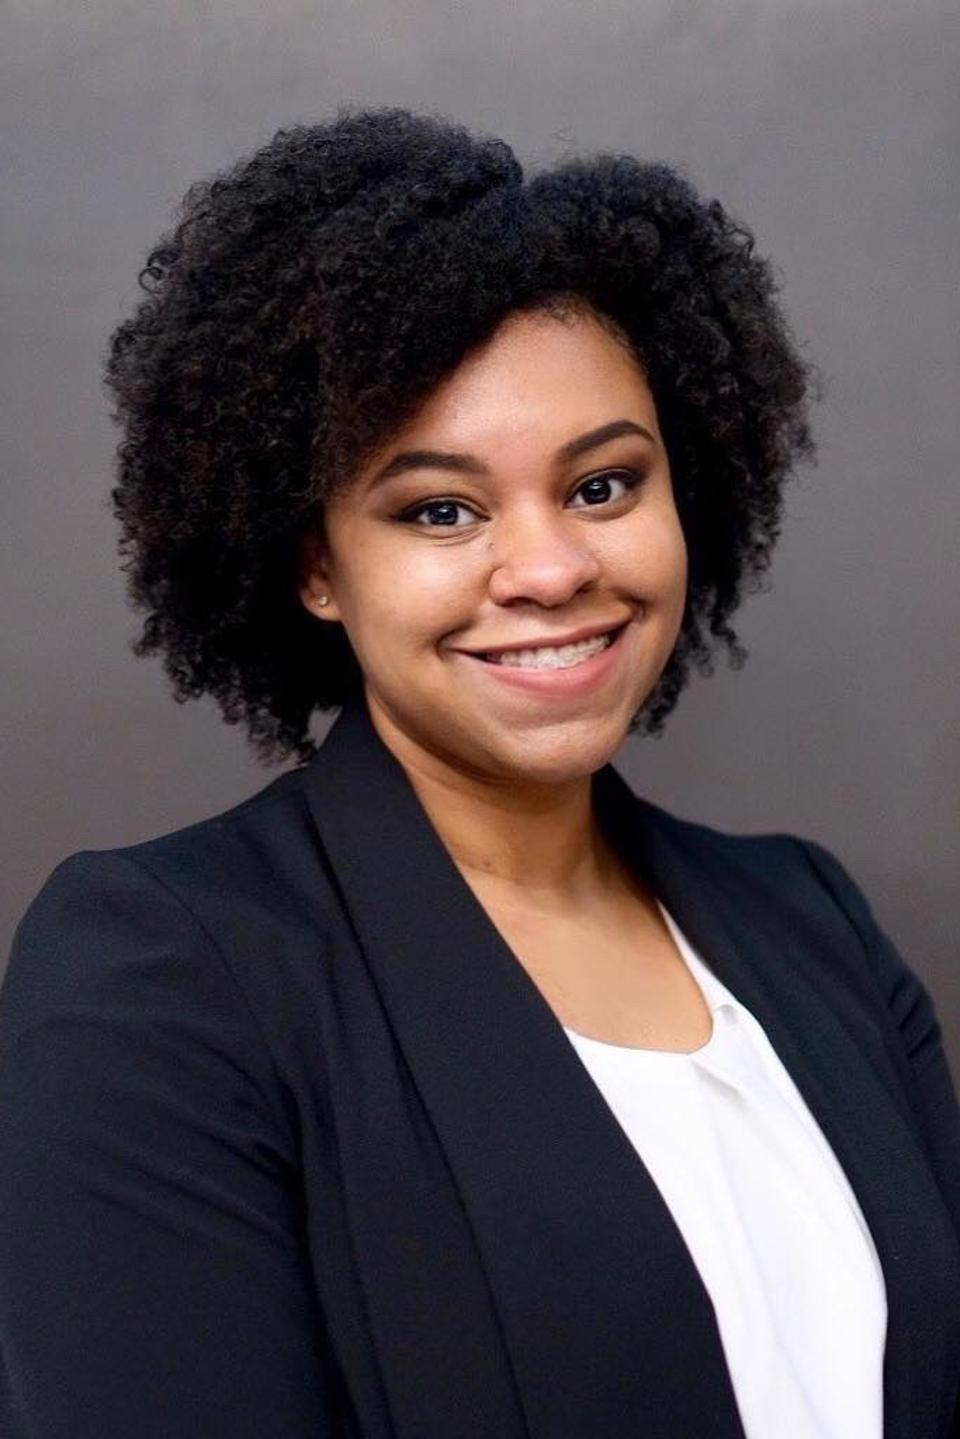 Headshot of Kianna Jackson in front of a gray background.